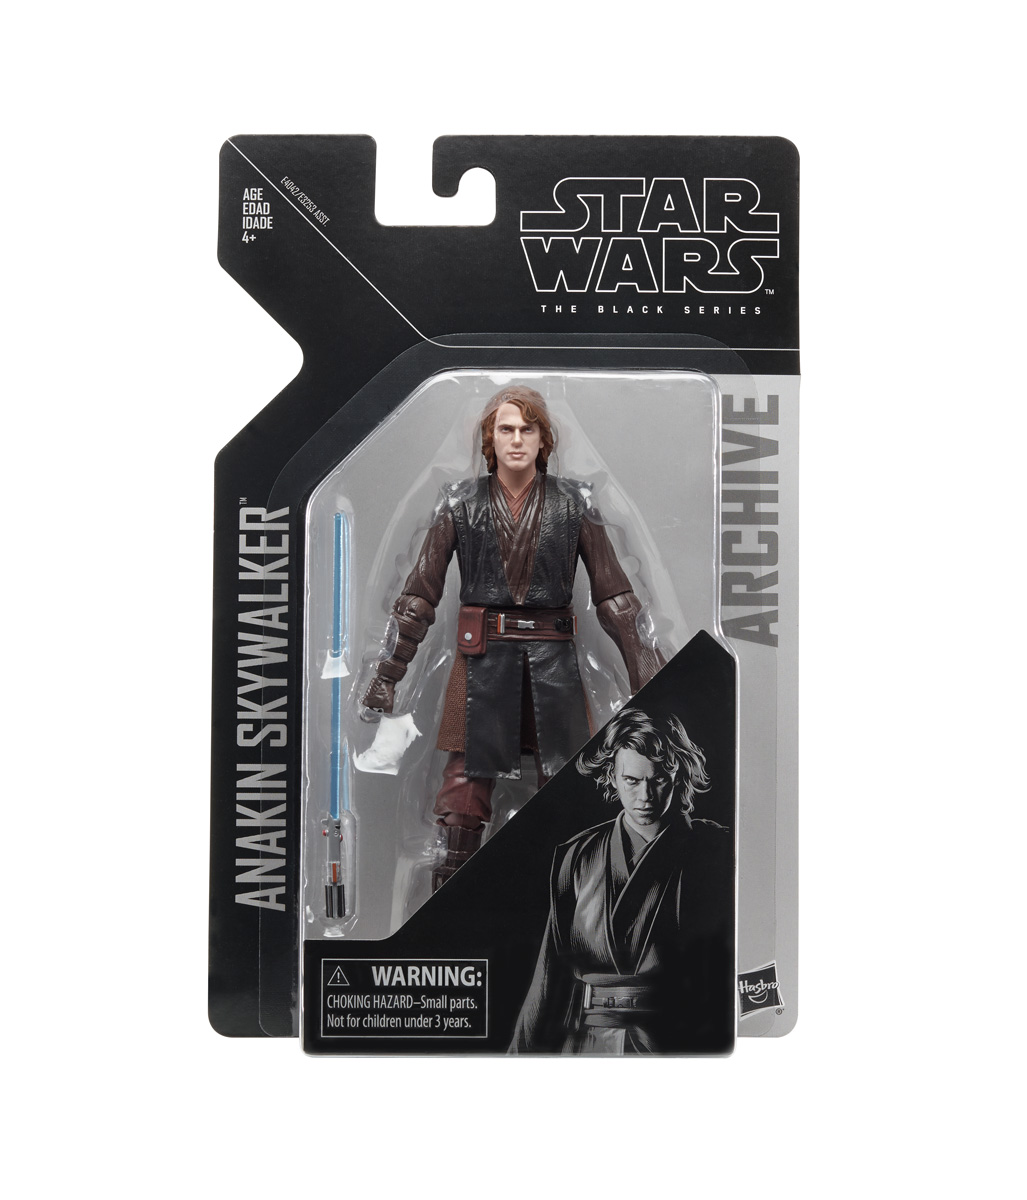 star-wars-the-black-series-archive-6-inch-figure-assortment-anakin-skywalker-in-pck_1